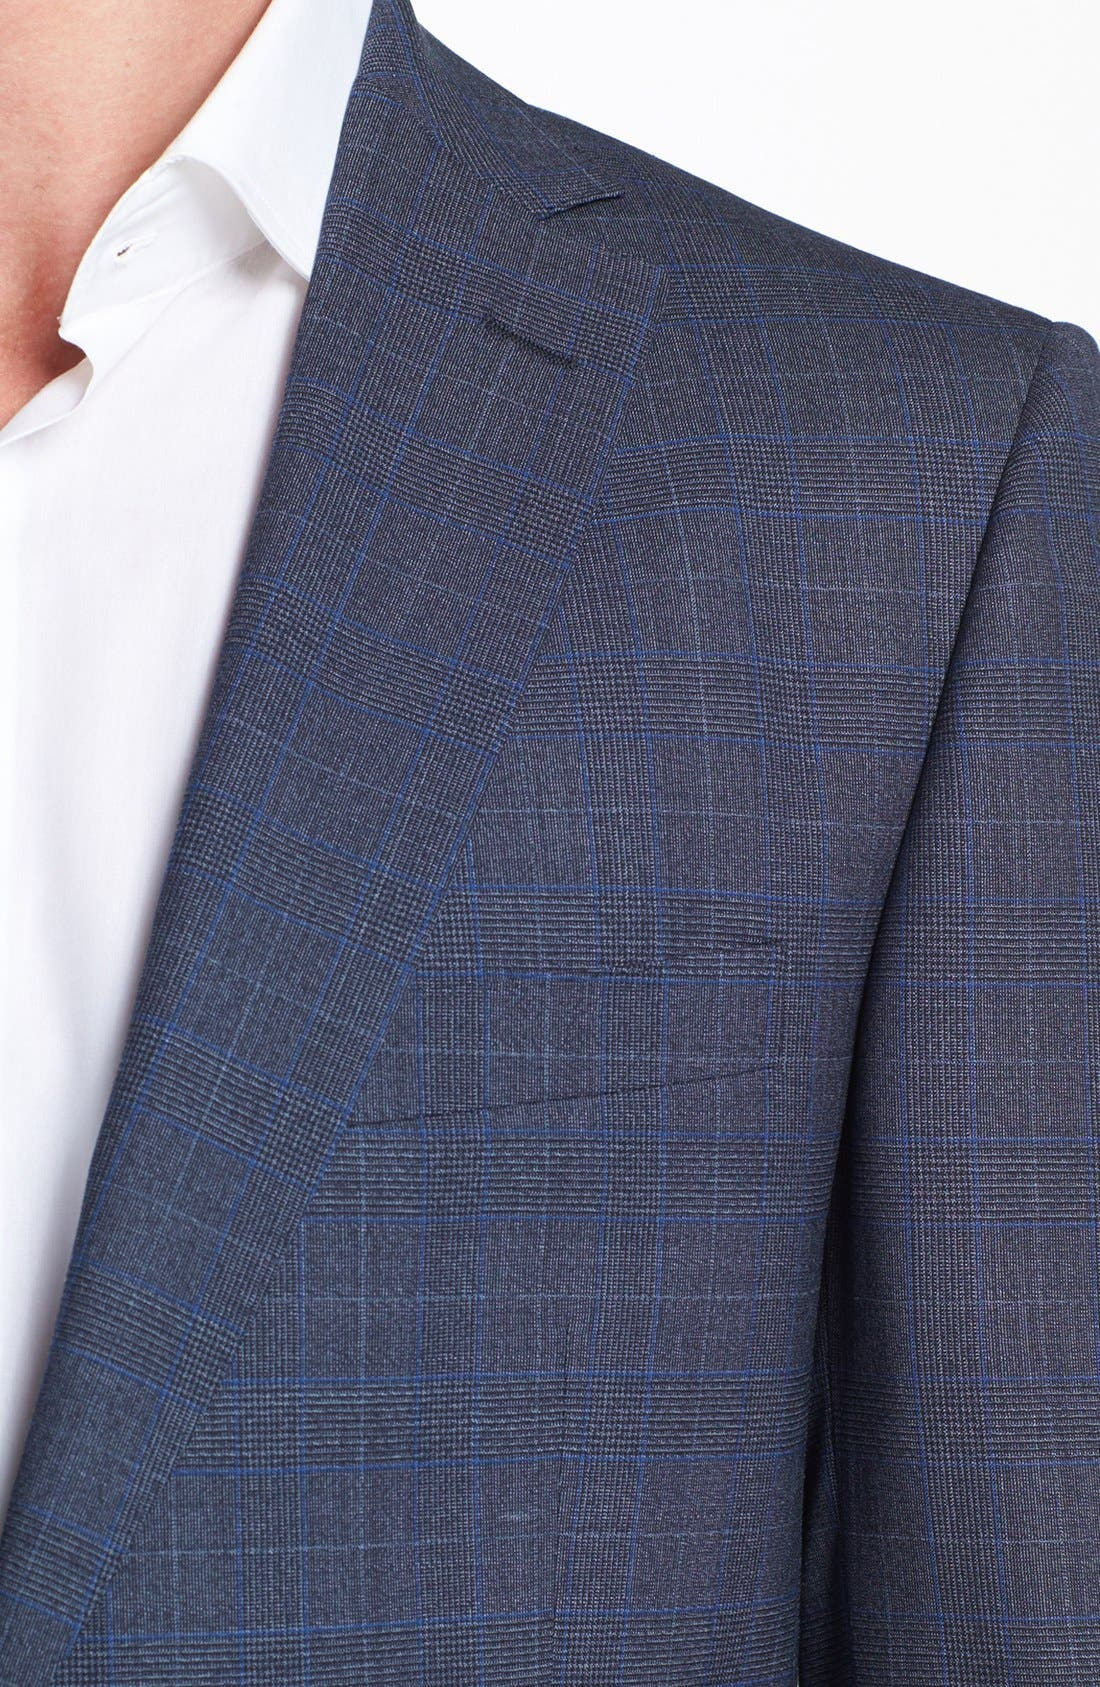 Alternate Image 2  - Z Zegna Plaid Wool Suit